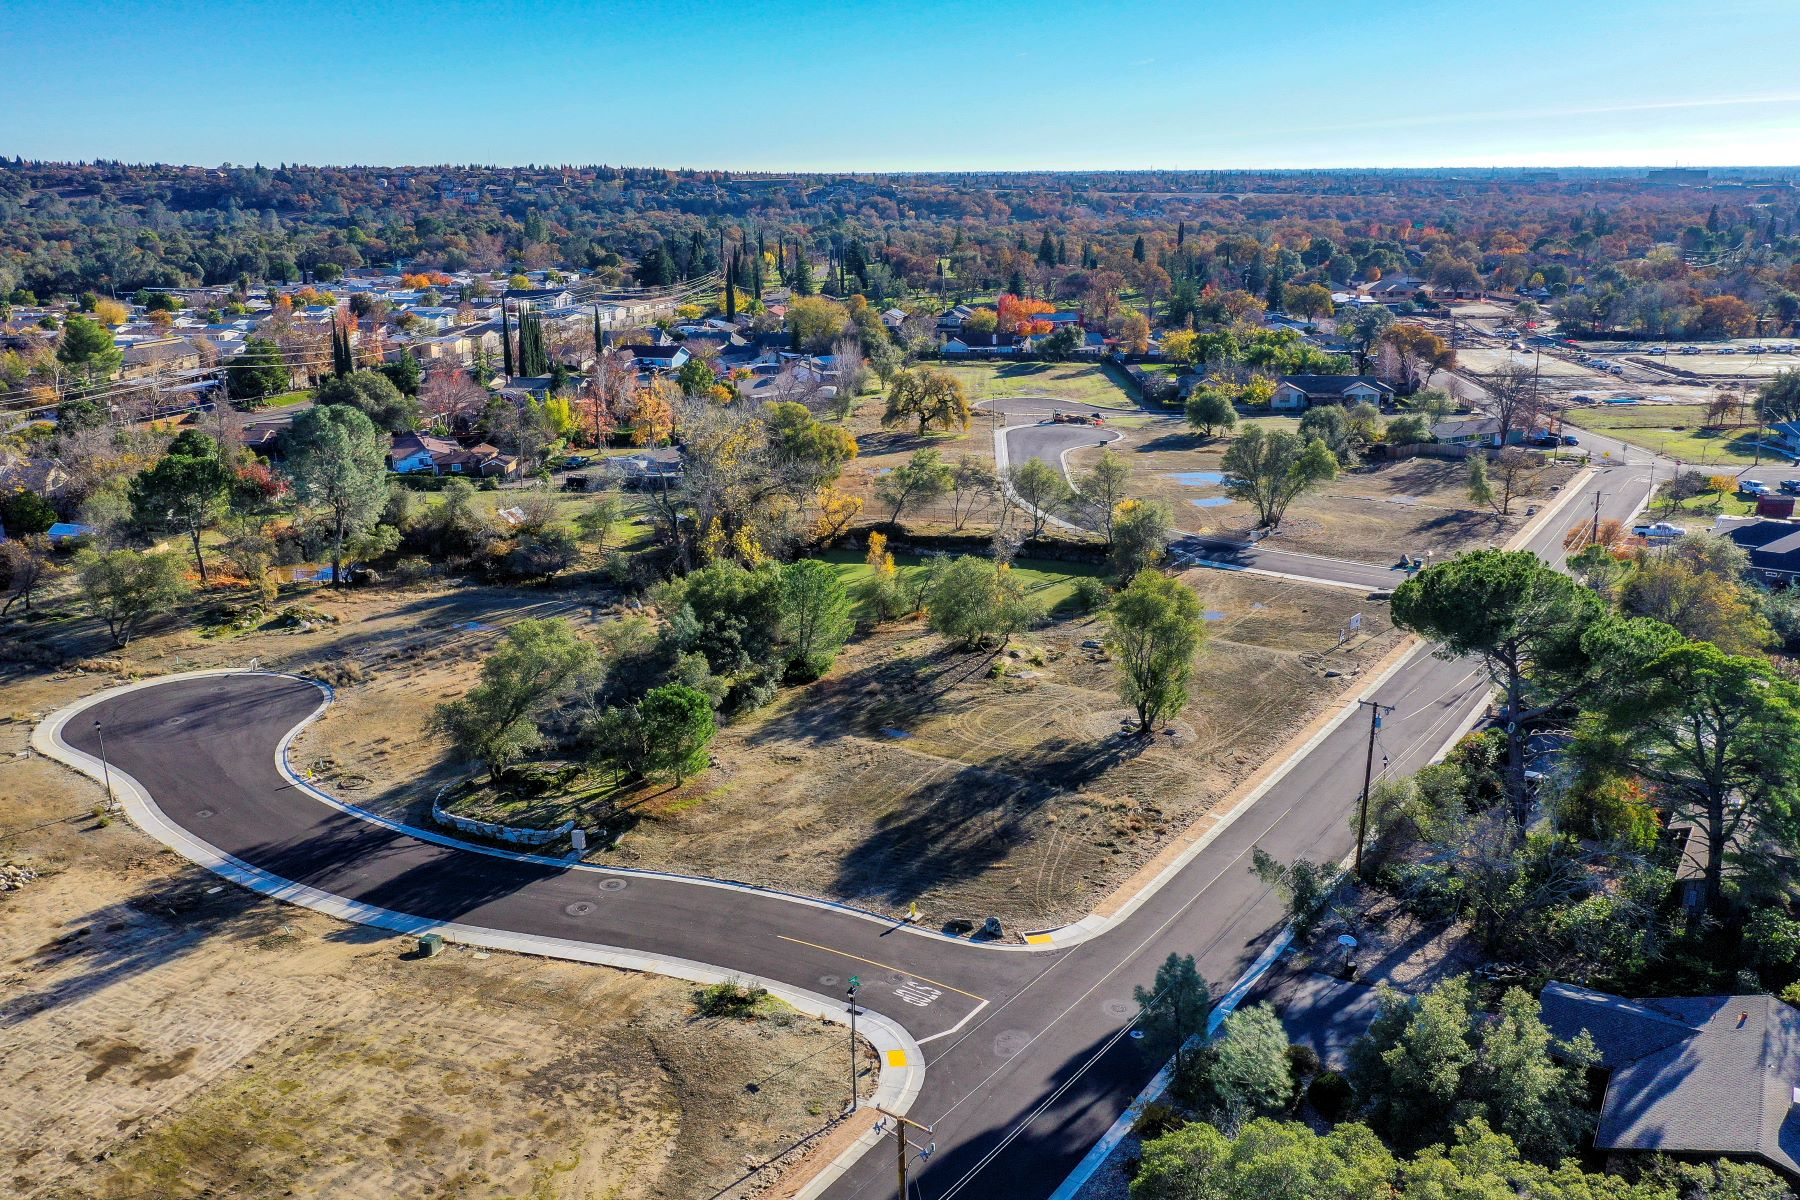 Land for Sale at 4046 Winding Lane, Rocklin, CA 95677 4046 Winding Lane Rocklin, California 95677 United States